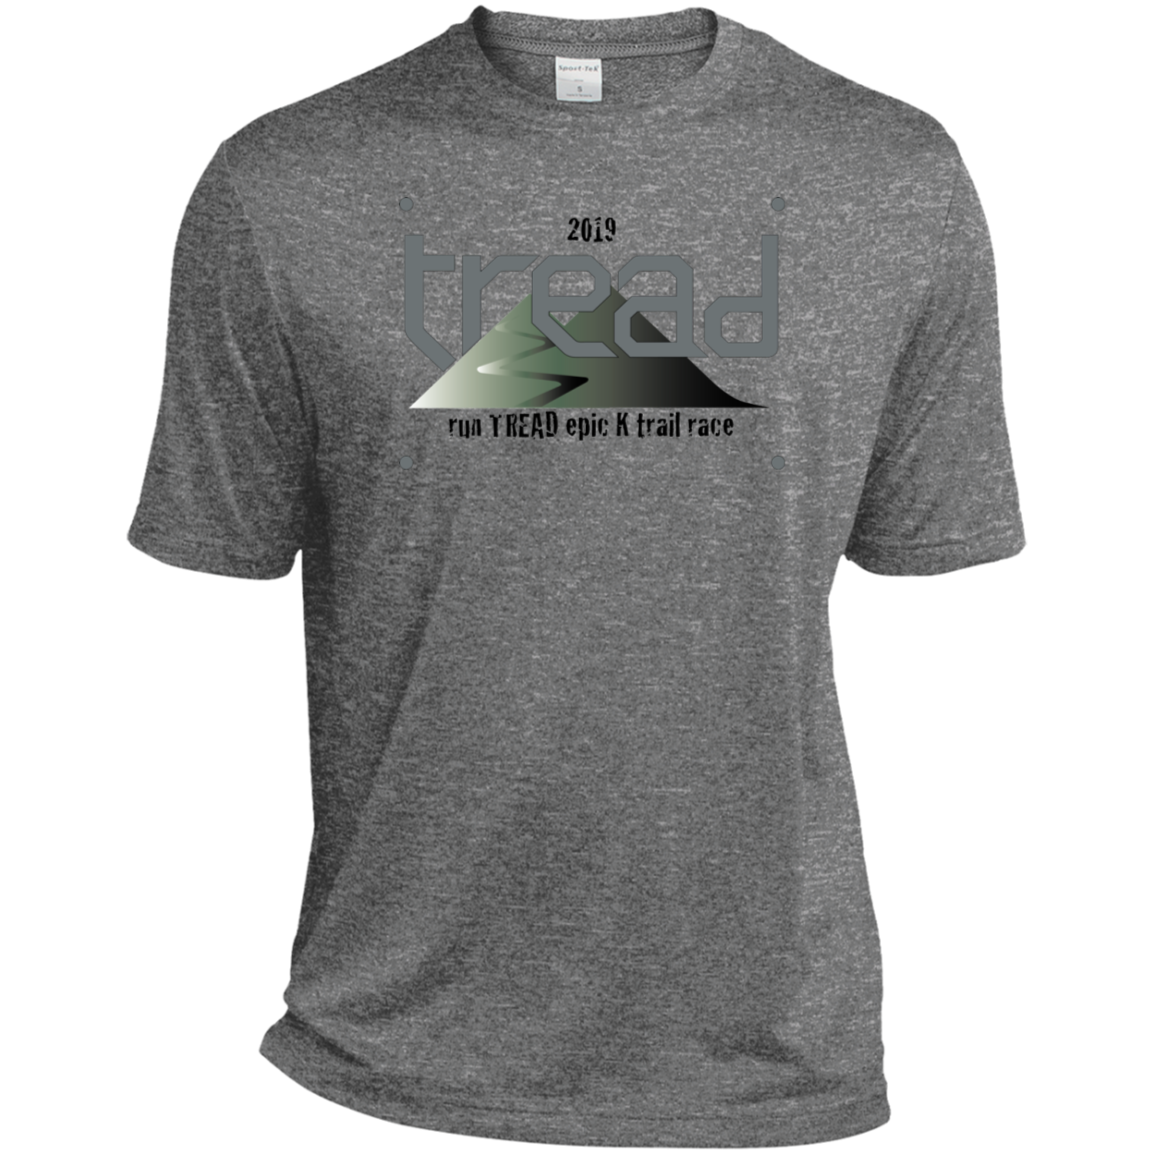 TREAD DESIGN | BIB Number Dri-Fit Moisture-Wicking T-Shirt